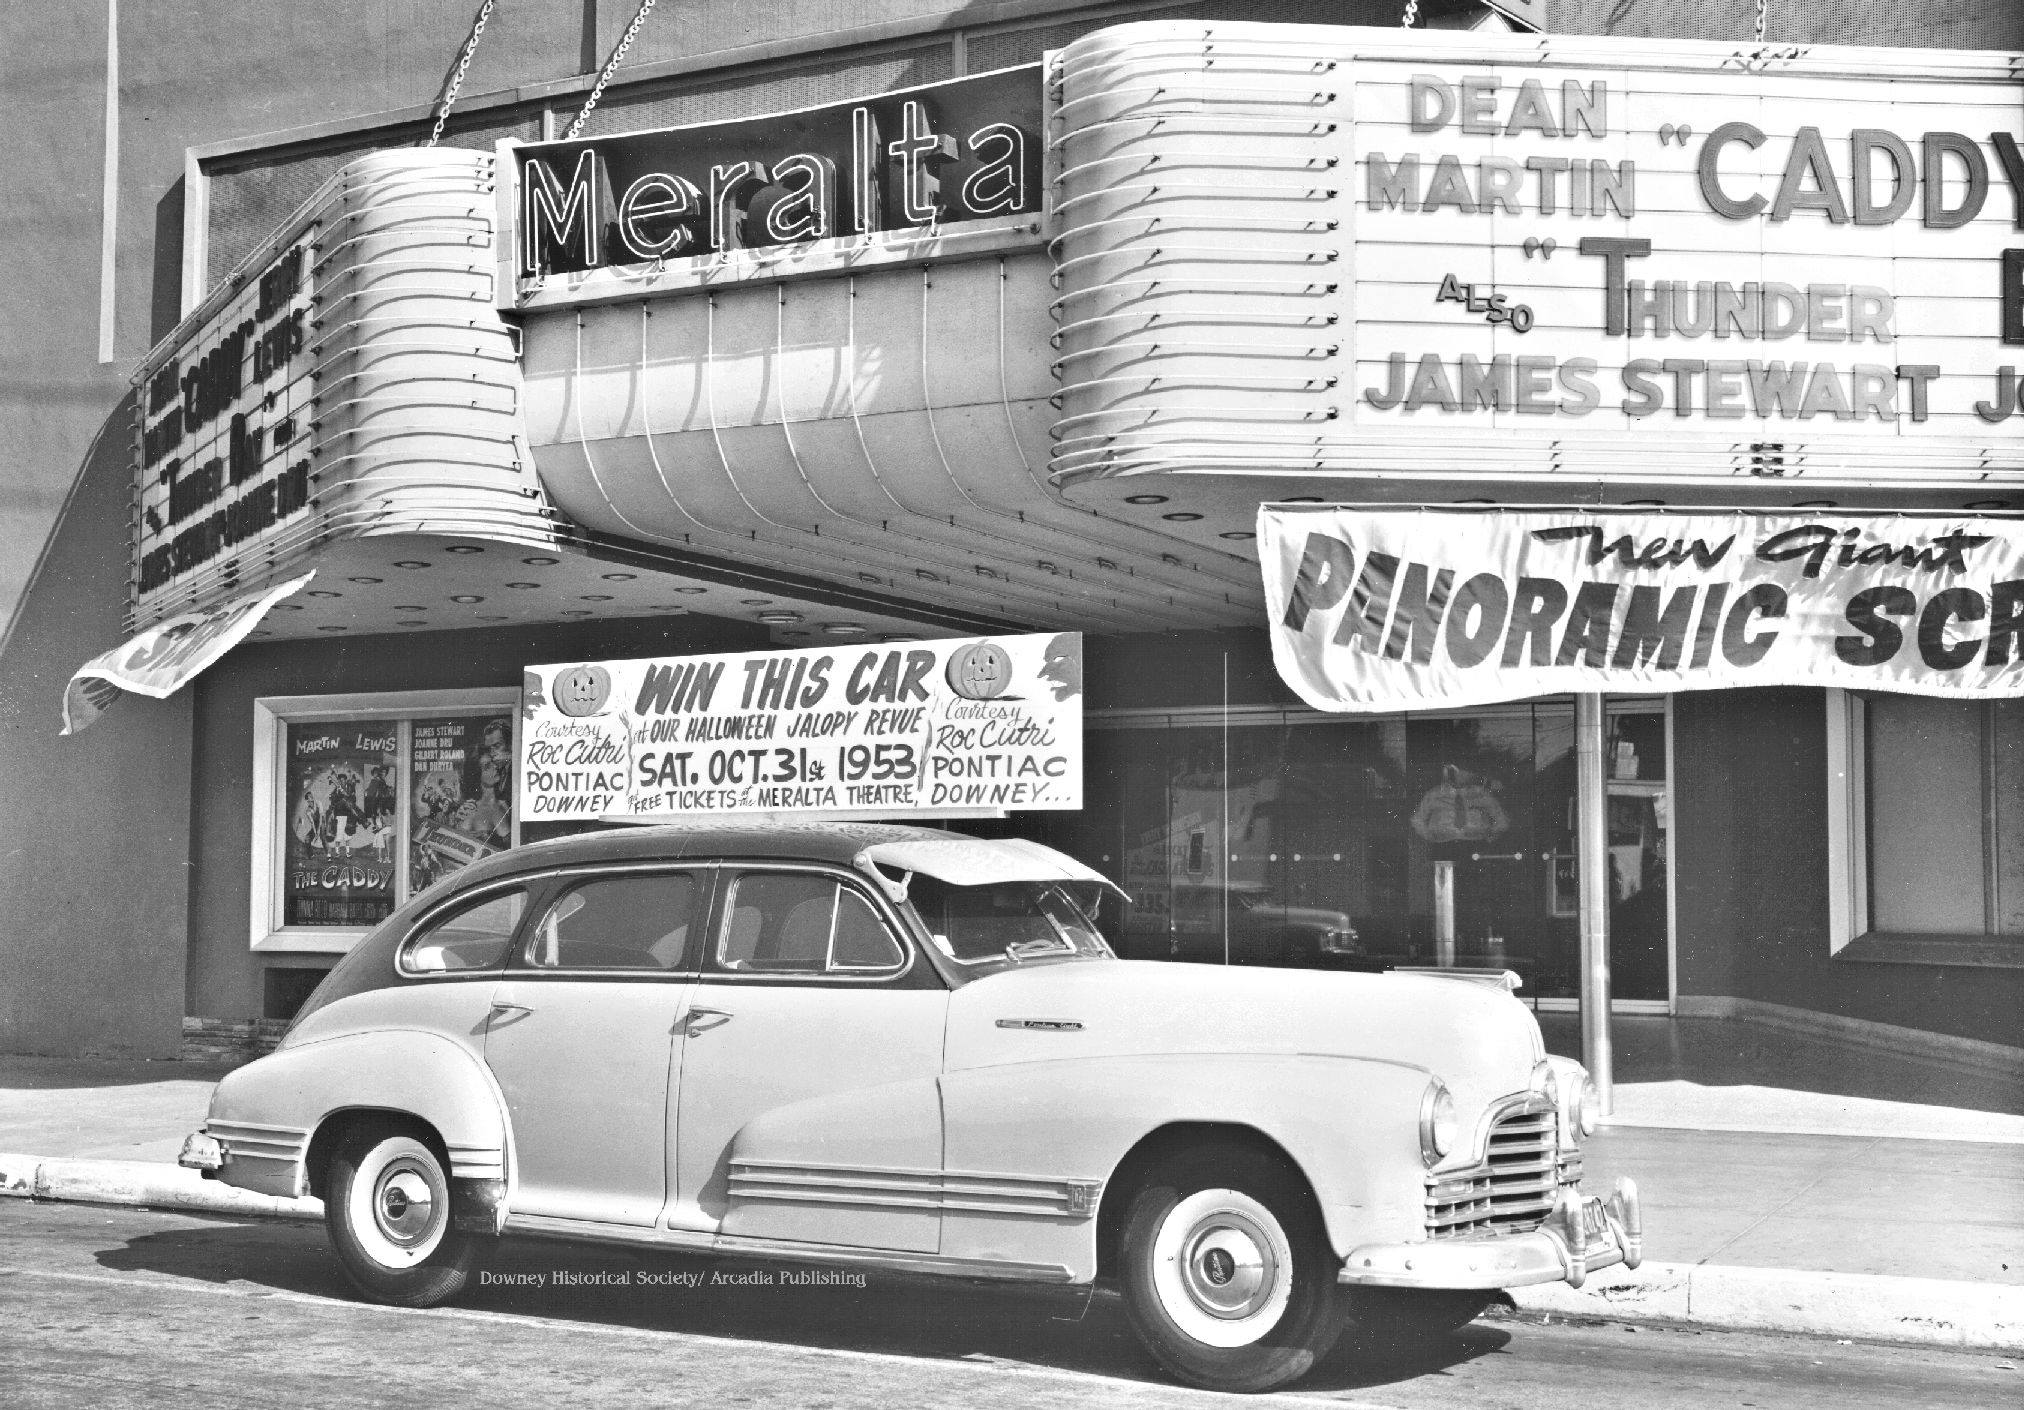 Remembering Downeys old movie theaters of the 50s and 60s — The ...